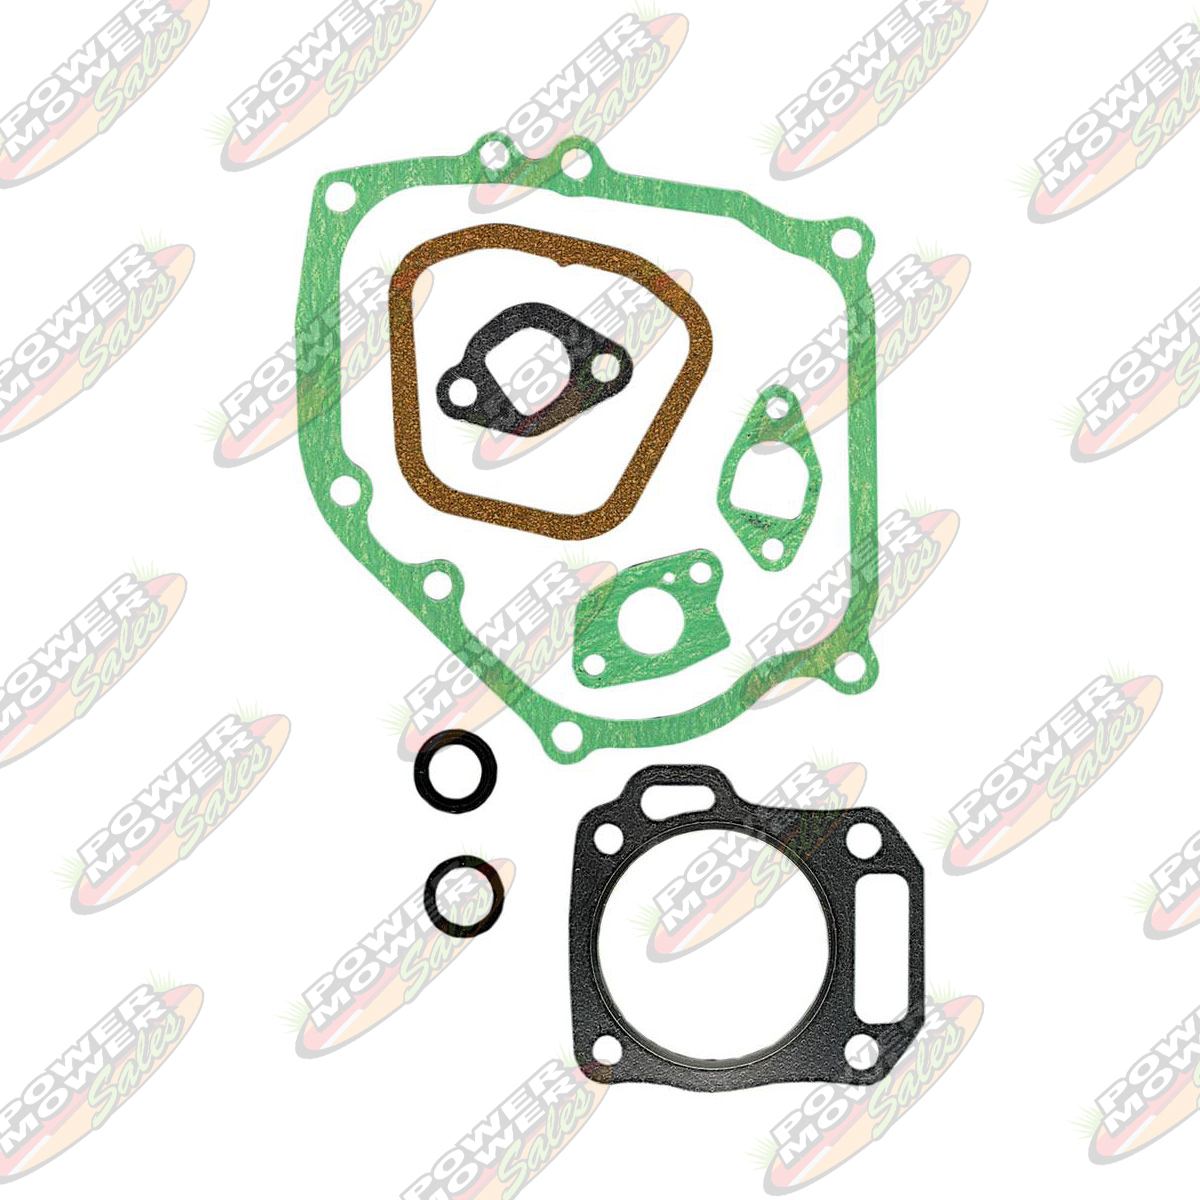 Replacement Gasket Set for Honda GX160 Engines 06111-ZH8-405